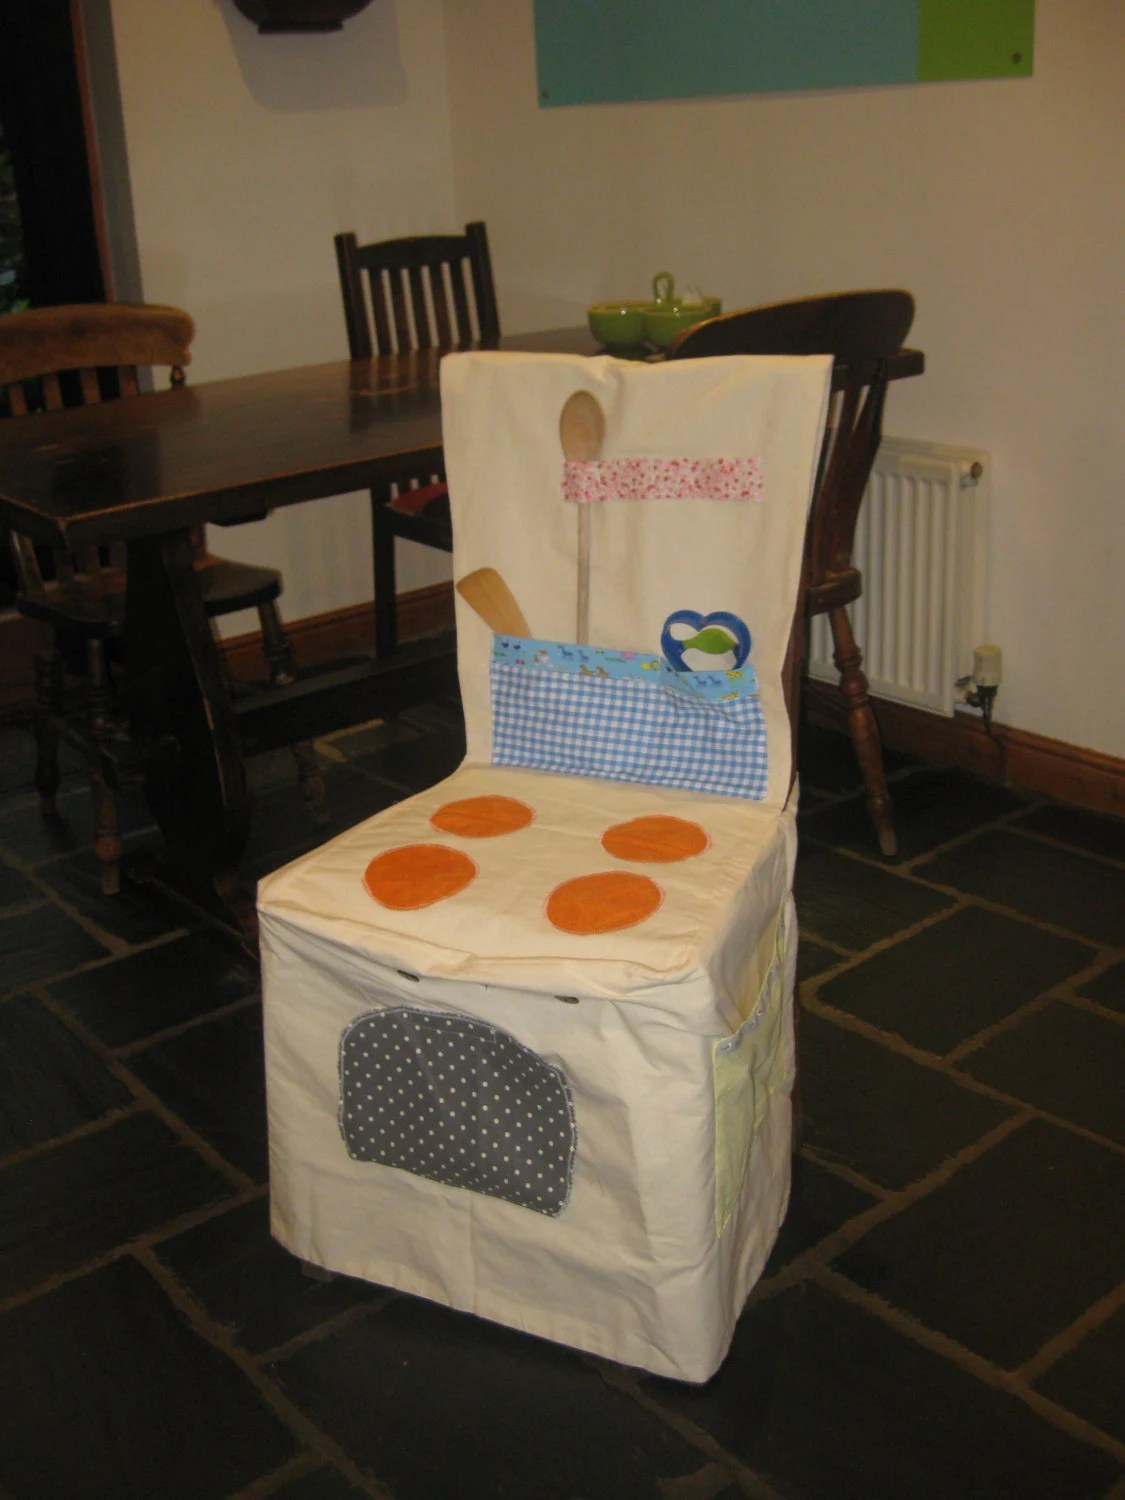 buy kitchen sink bargain outlet cabinets fabric cooker role play chair cover space saving by ...